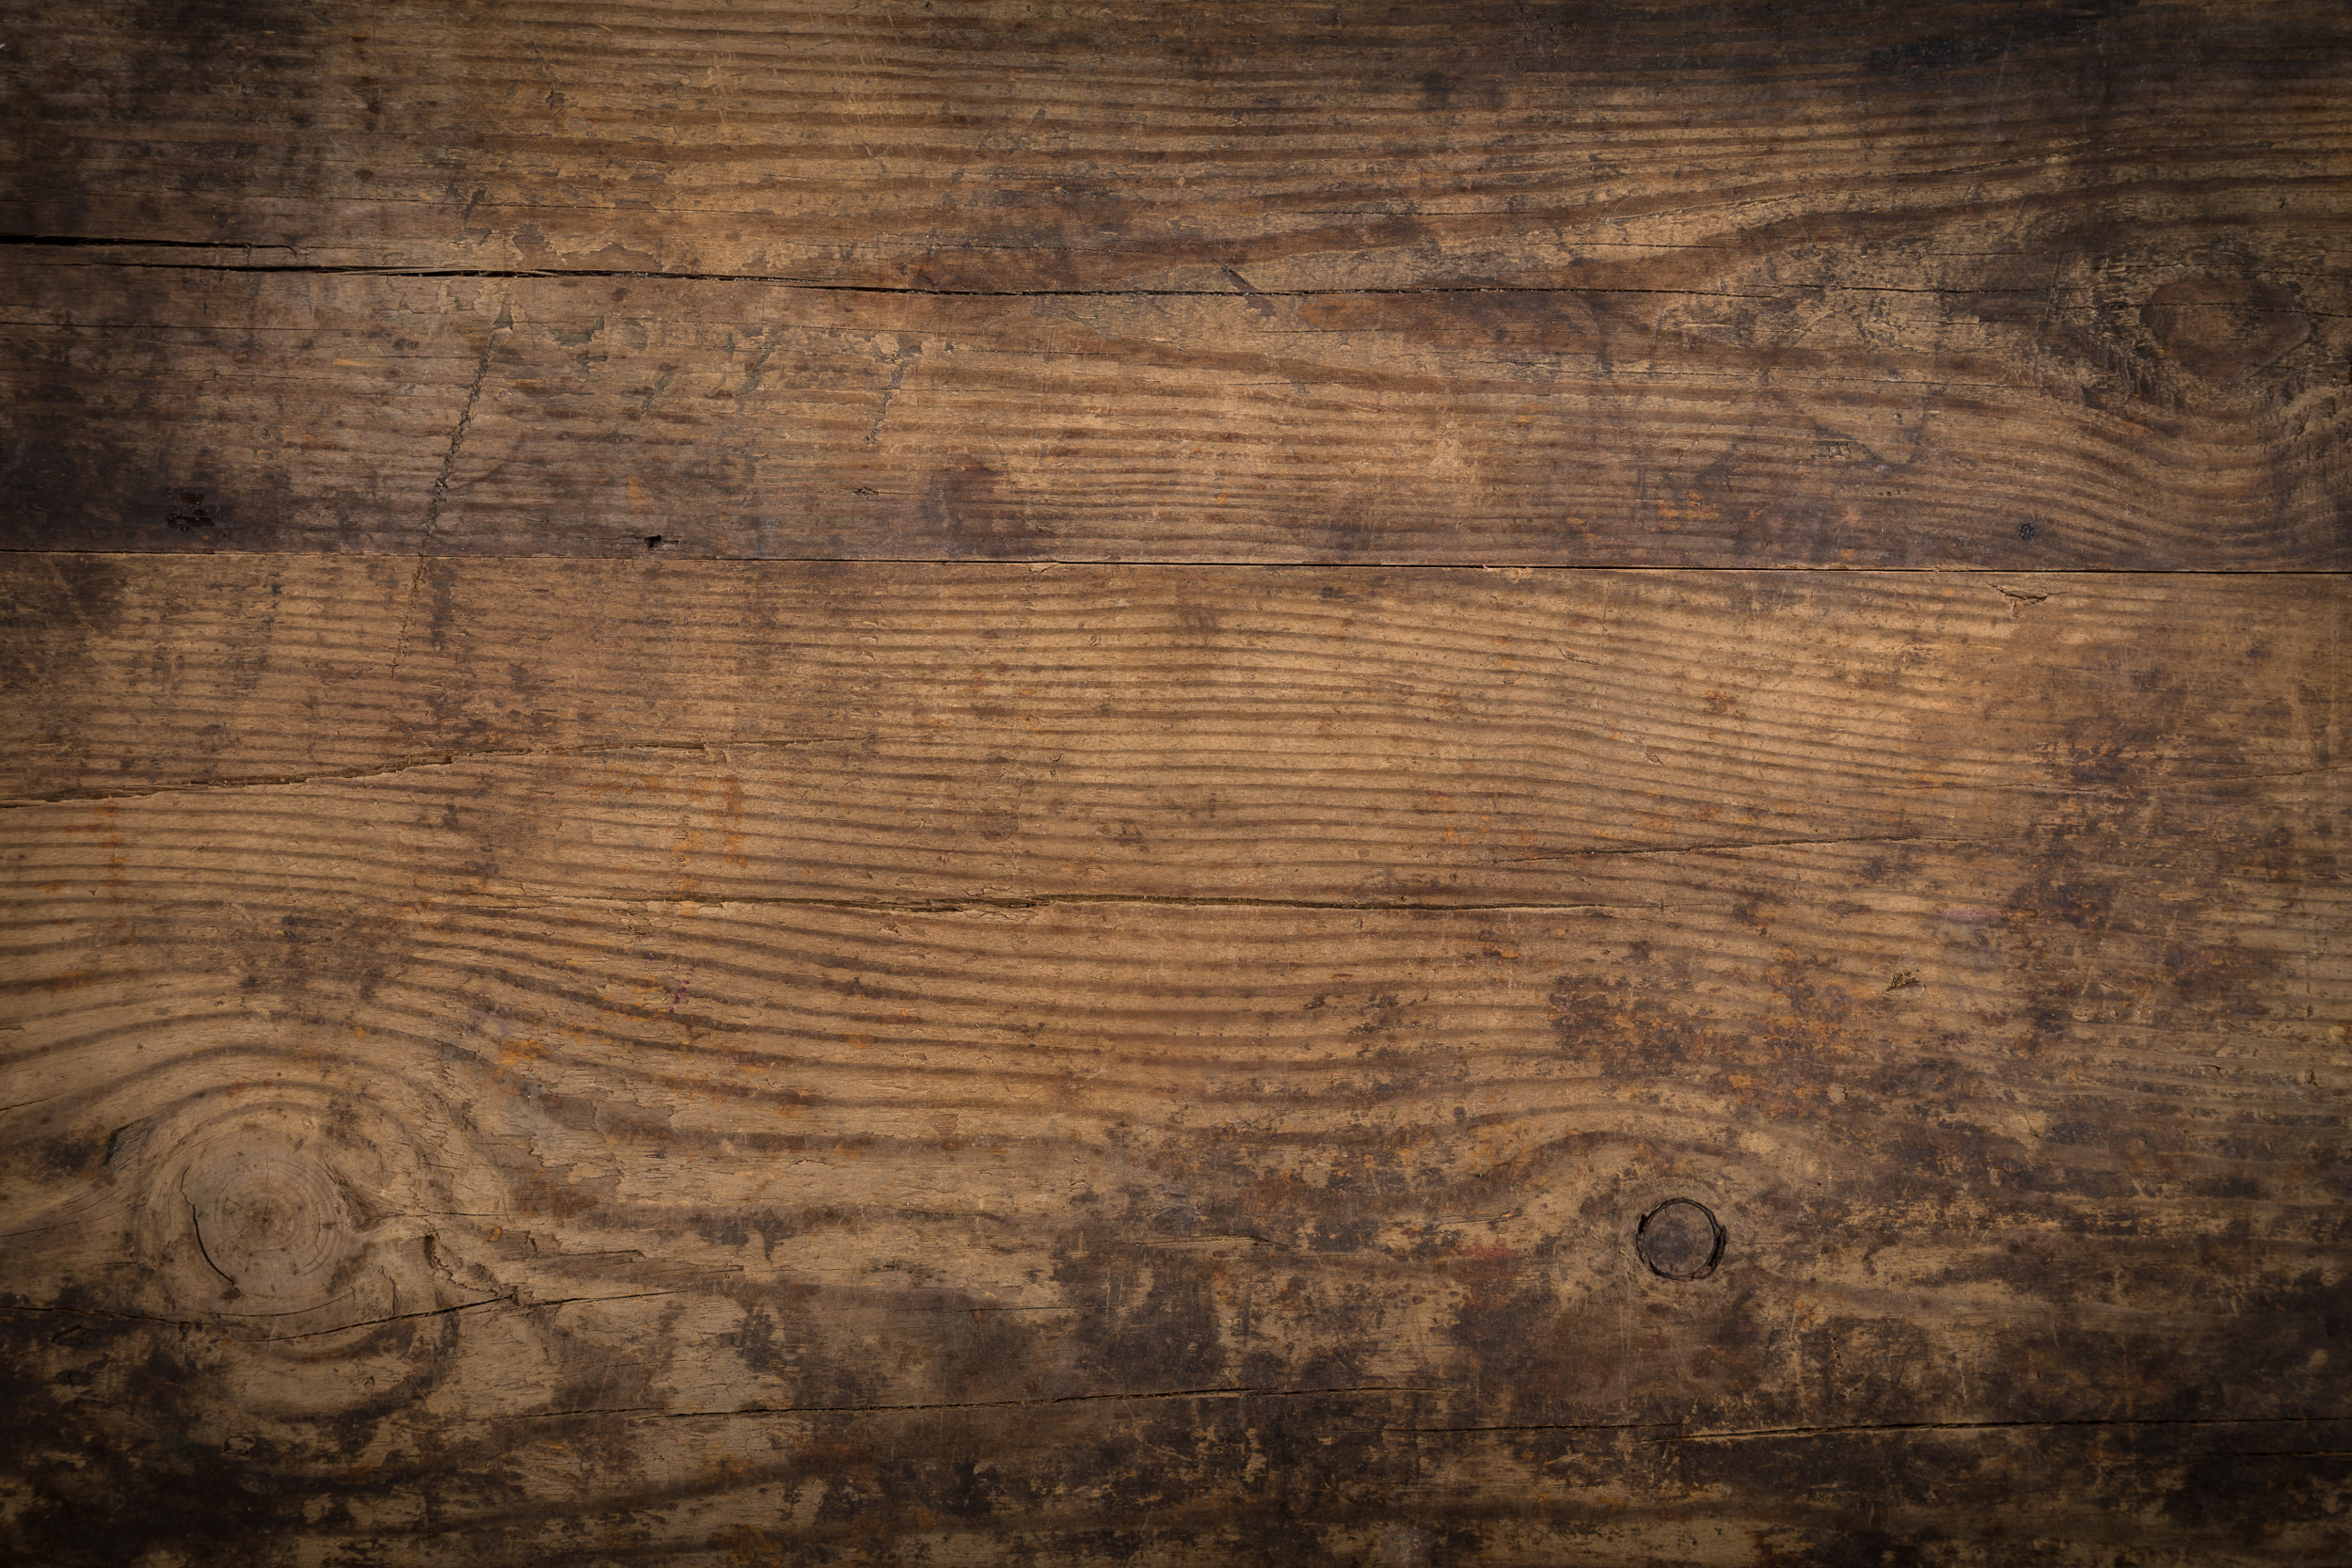 brown wood texture abstract background empty template contentmx